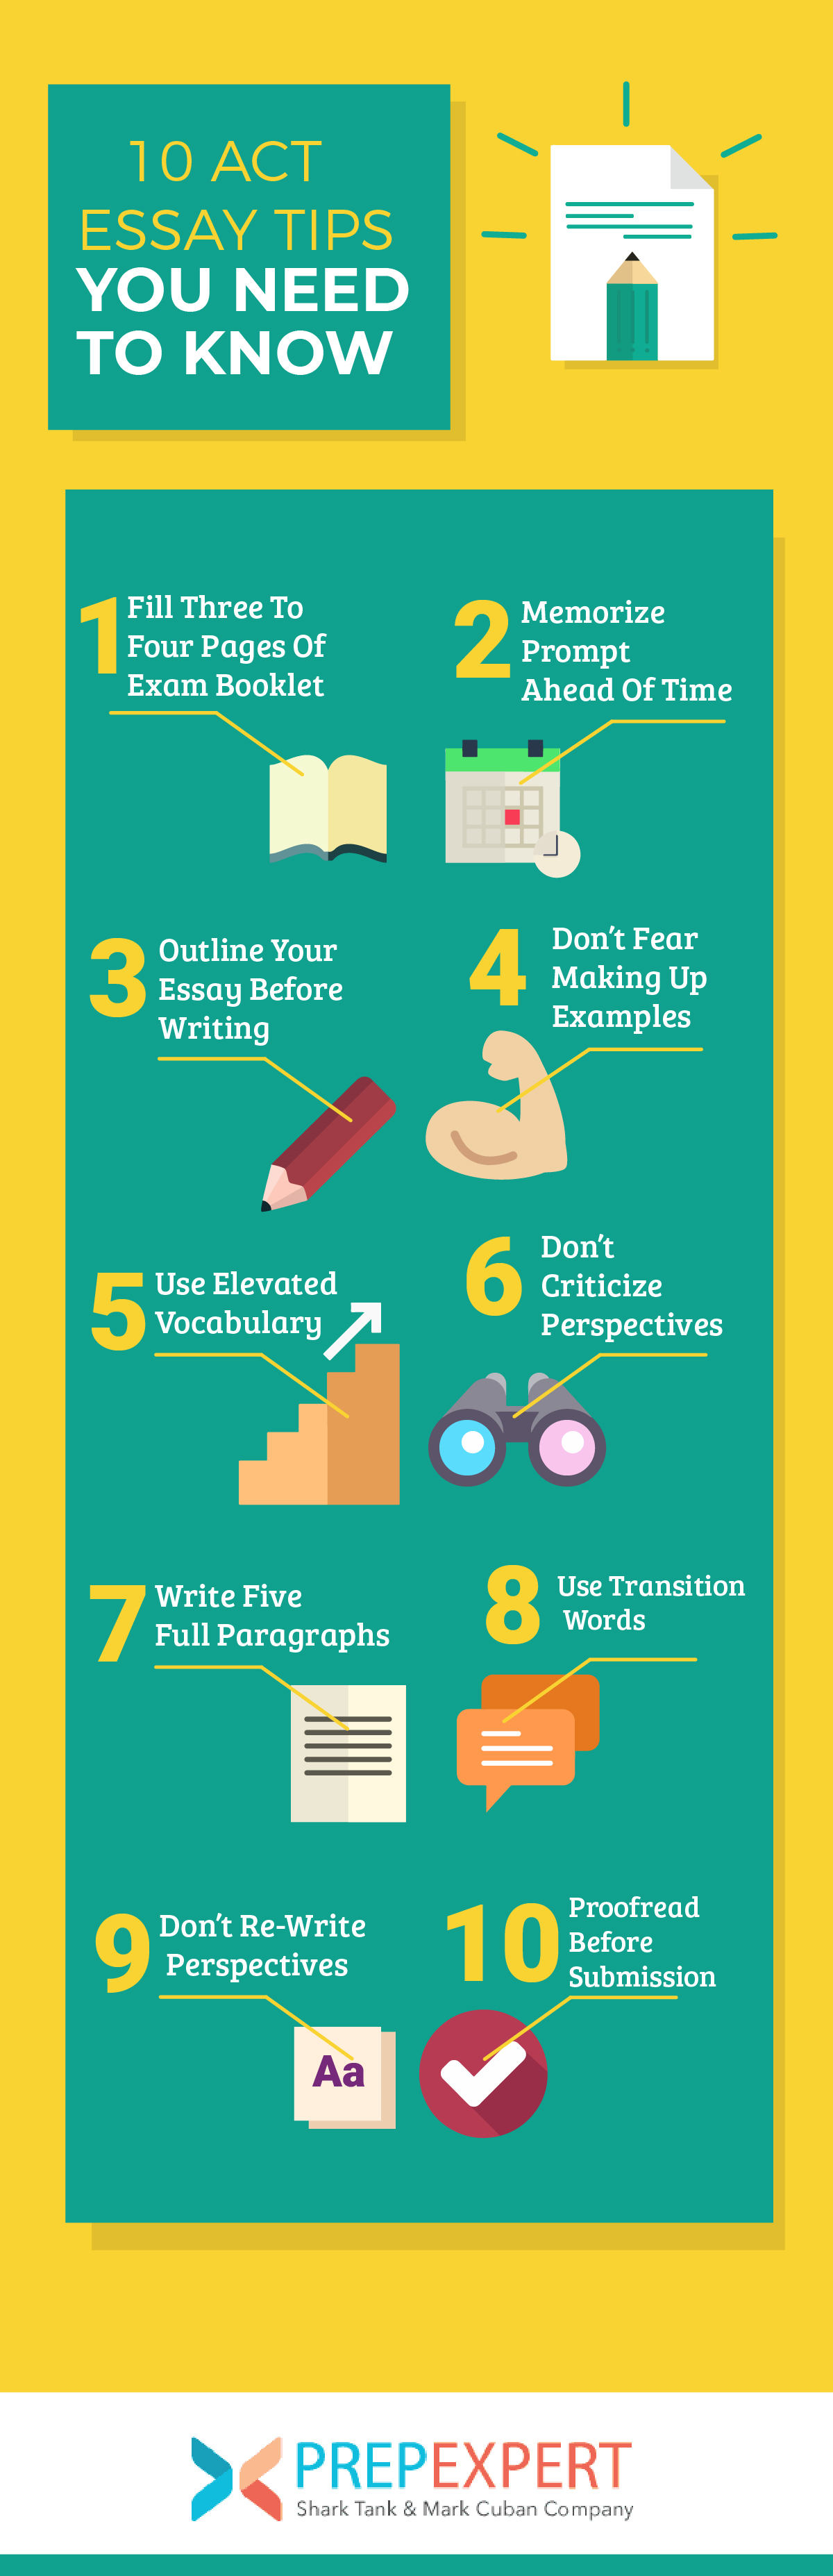 017 Essay Example Act 235585 Essayinfographics 052918 Fearsome New Time Limit Rubric Tips Full